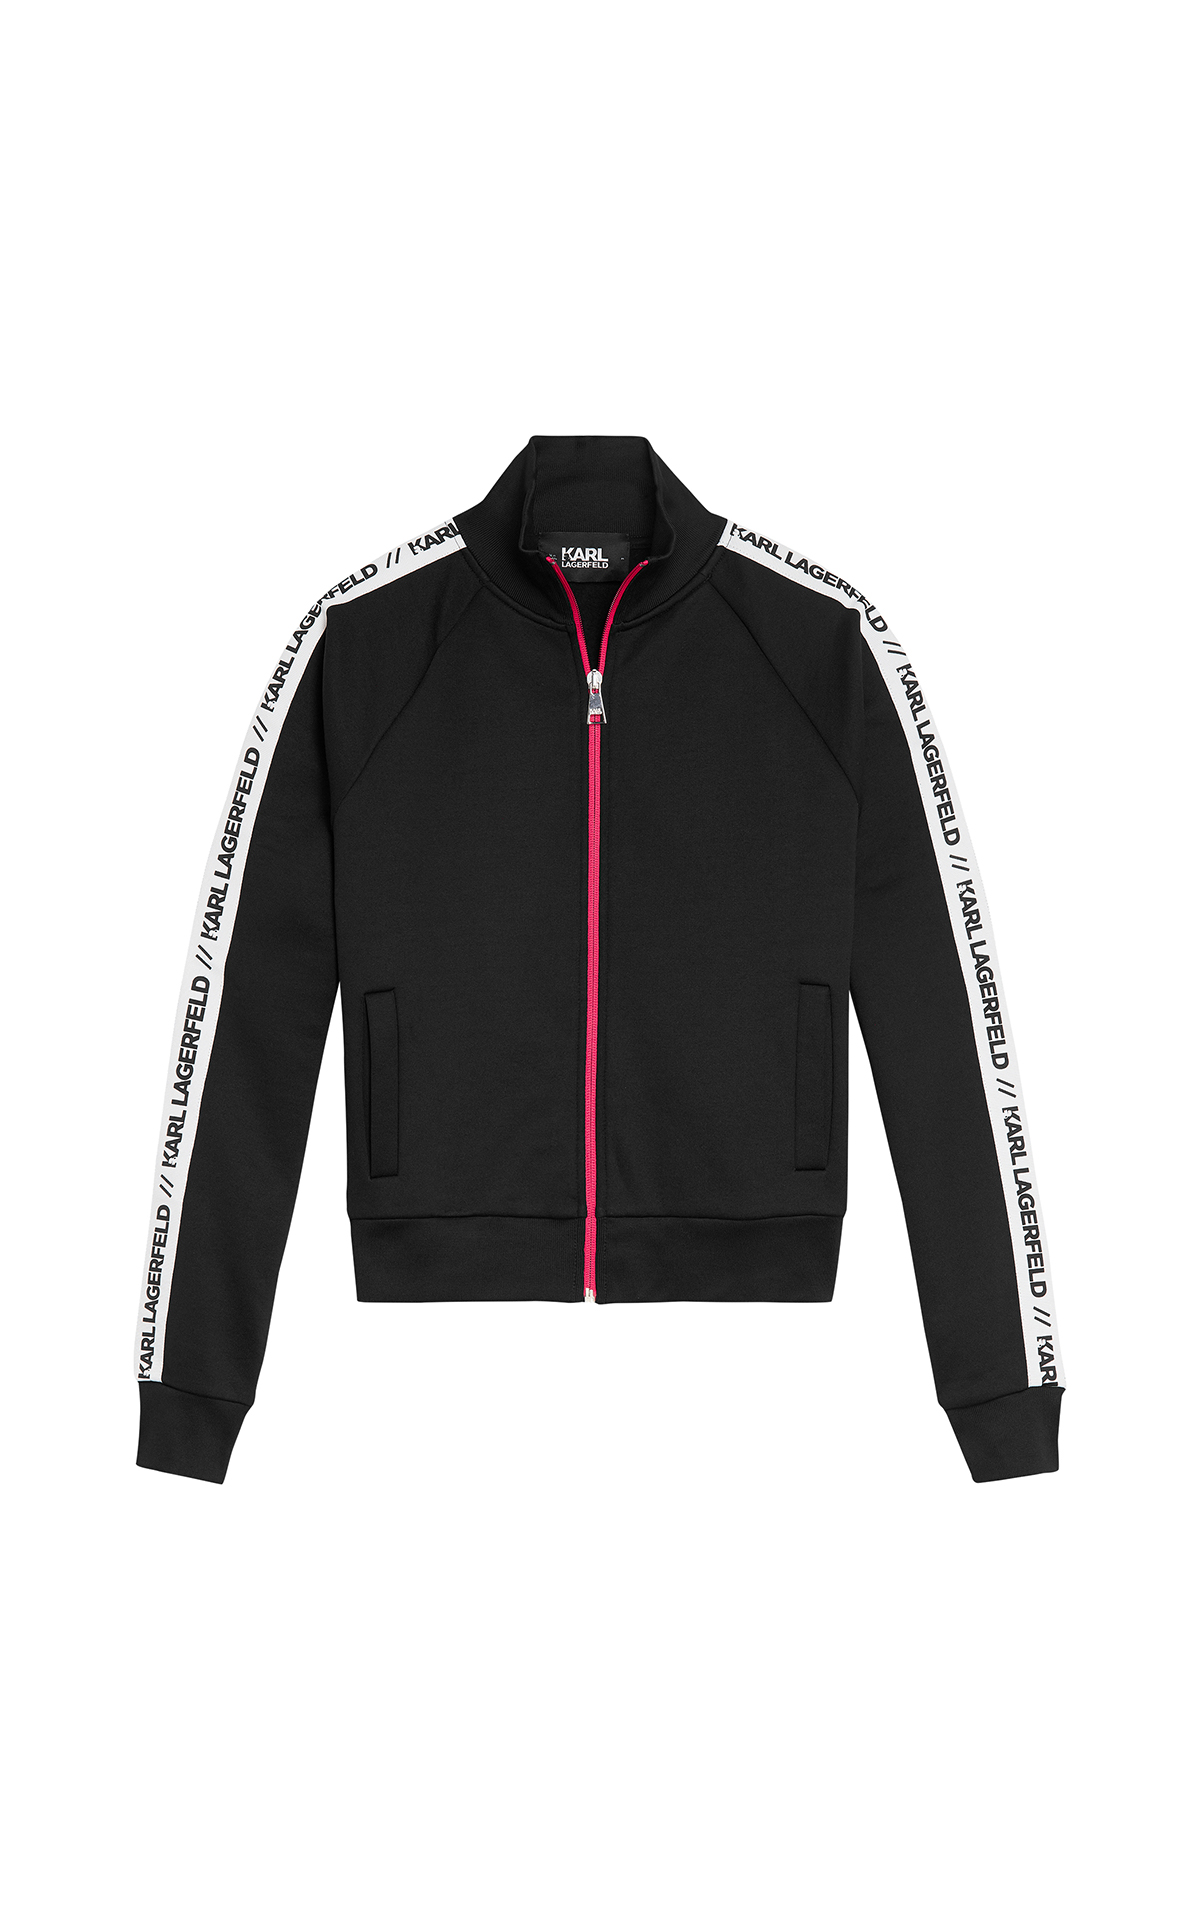 Karl Lagerfeld Zip Up Track Jacket